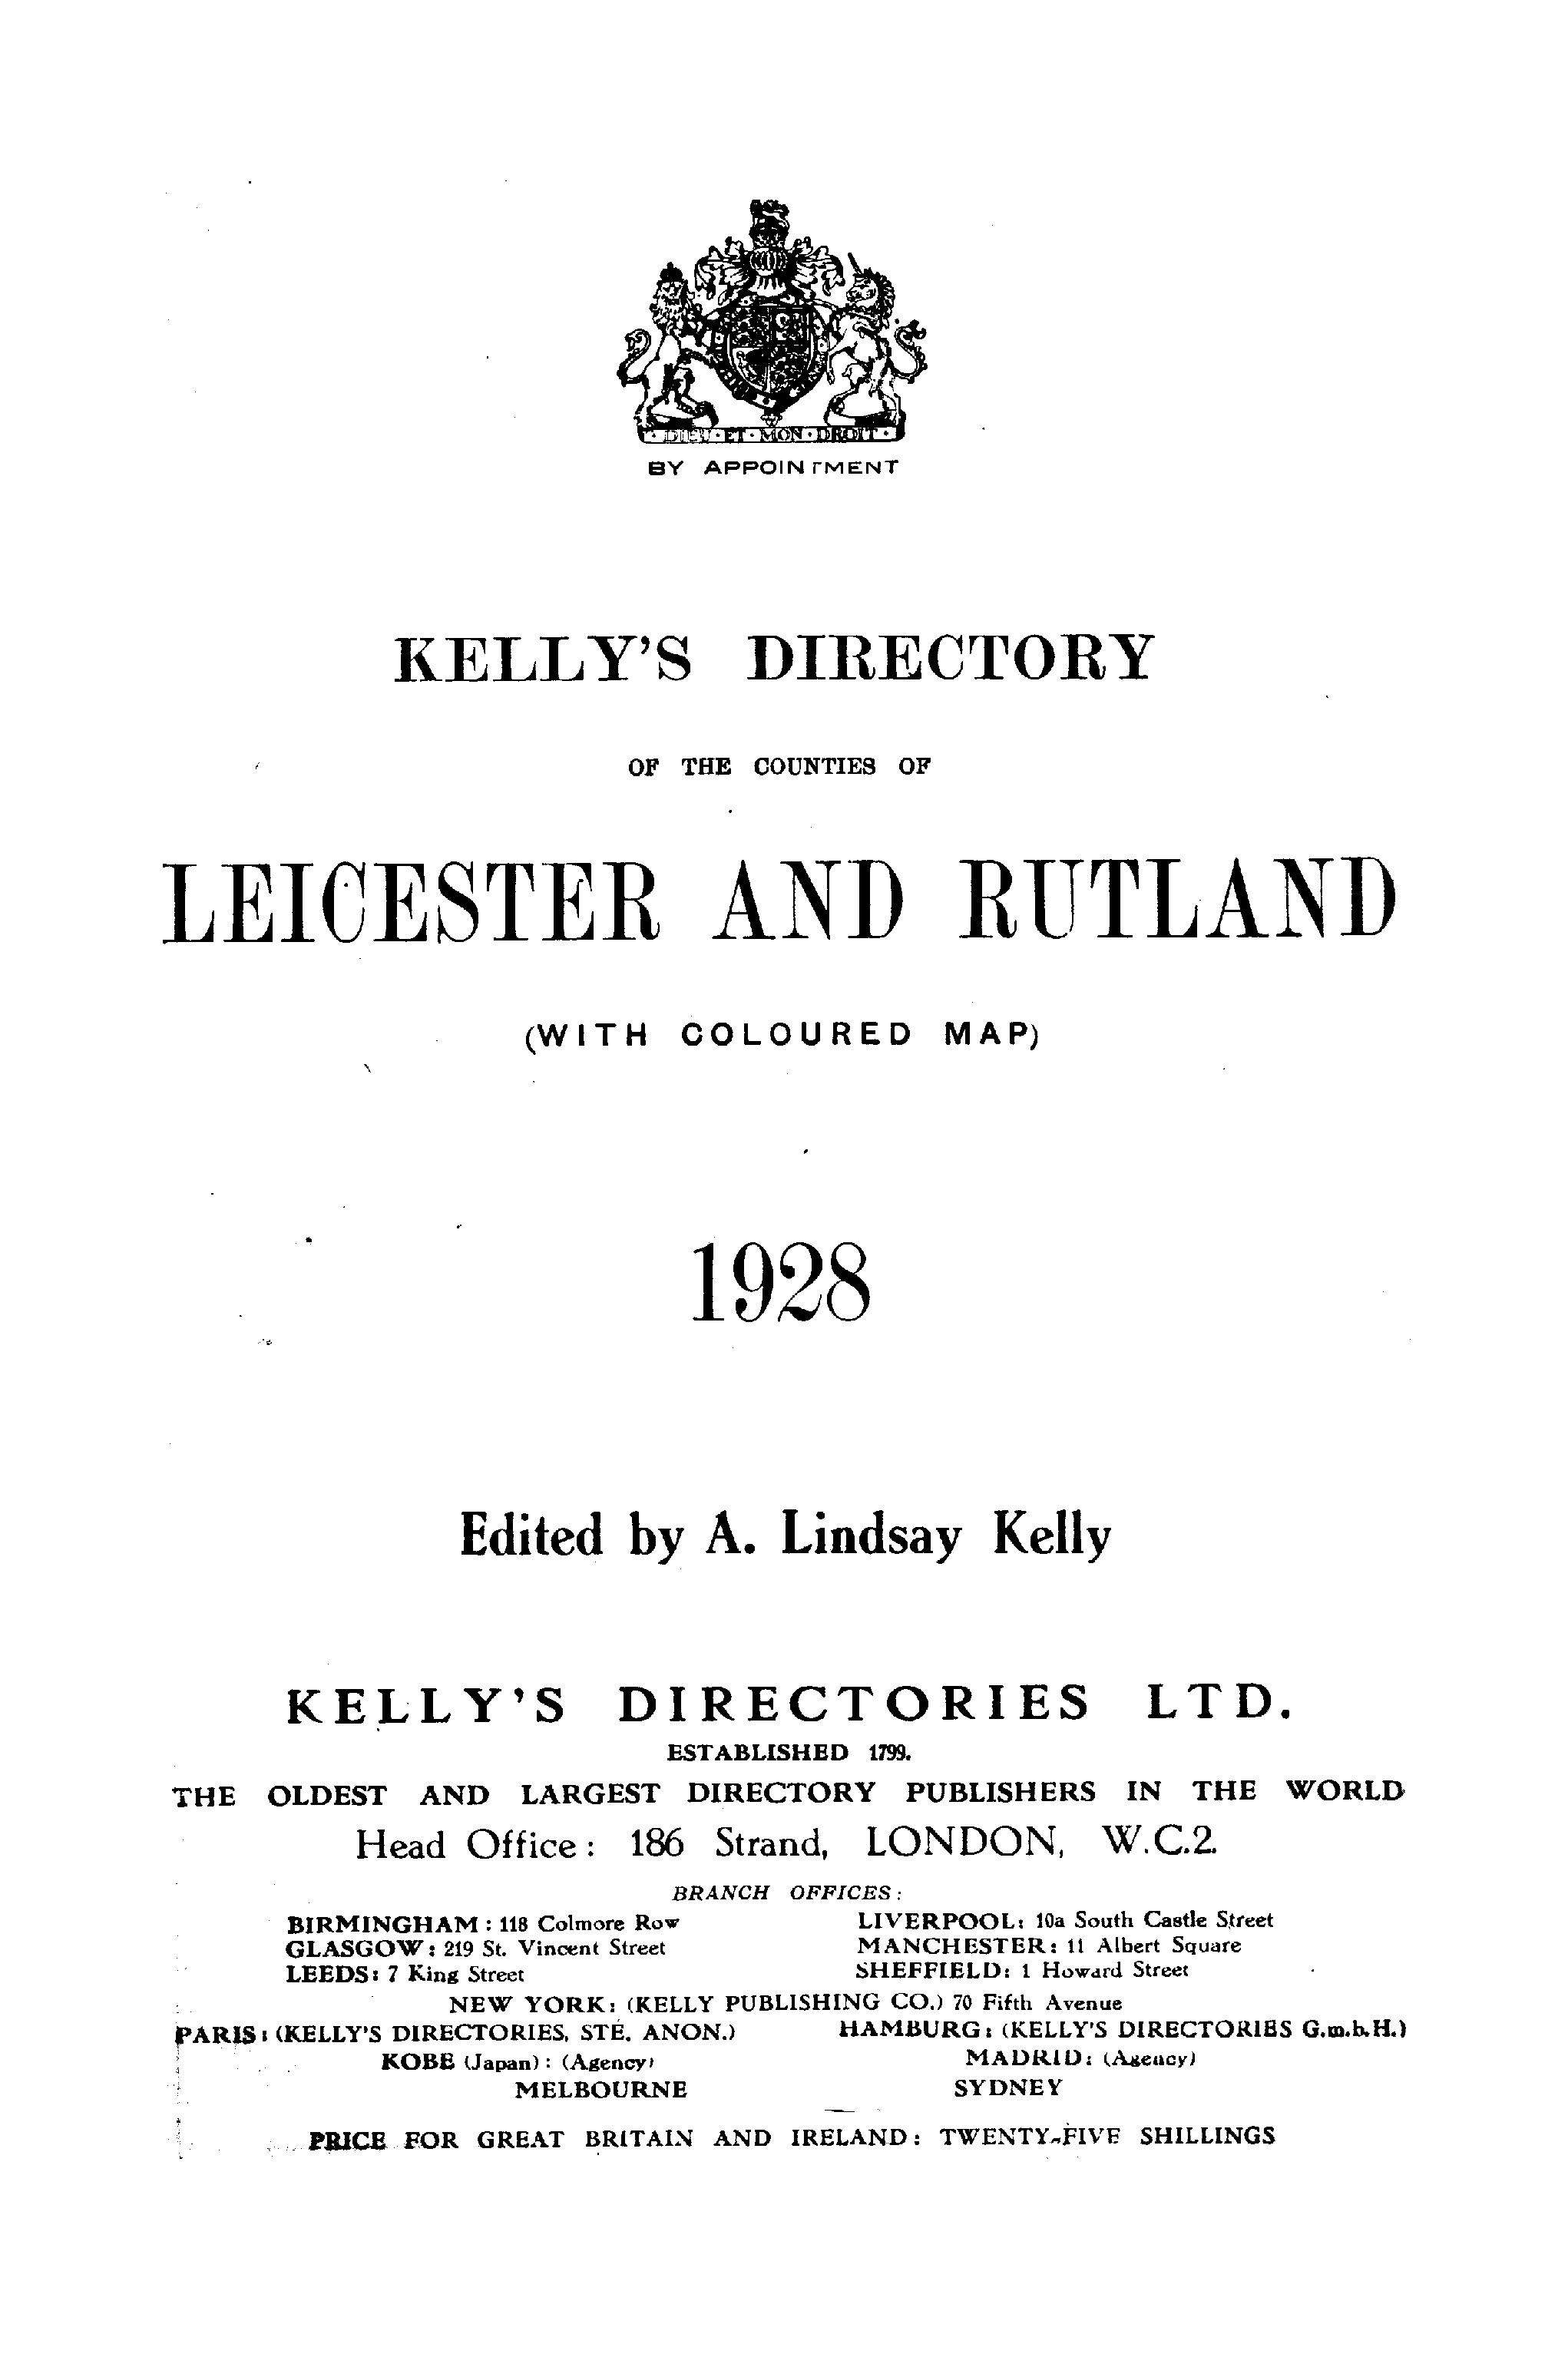 Kelly's Directory of Leicestershire and Rutland, 1928 page 29 - click to open larger version in a new window